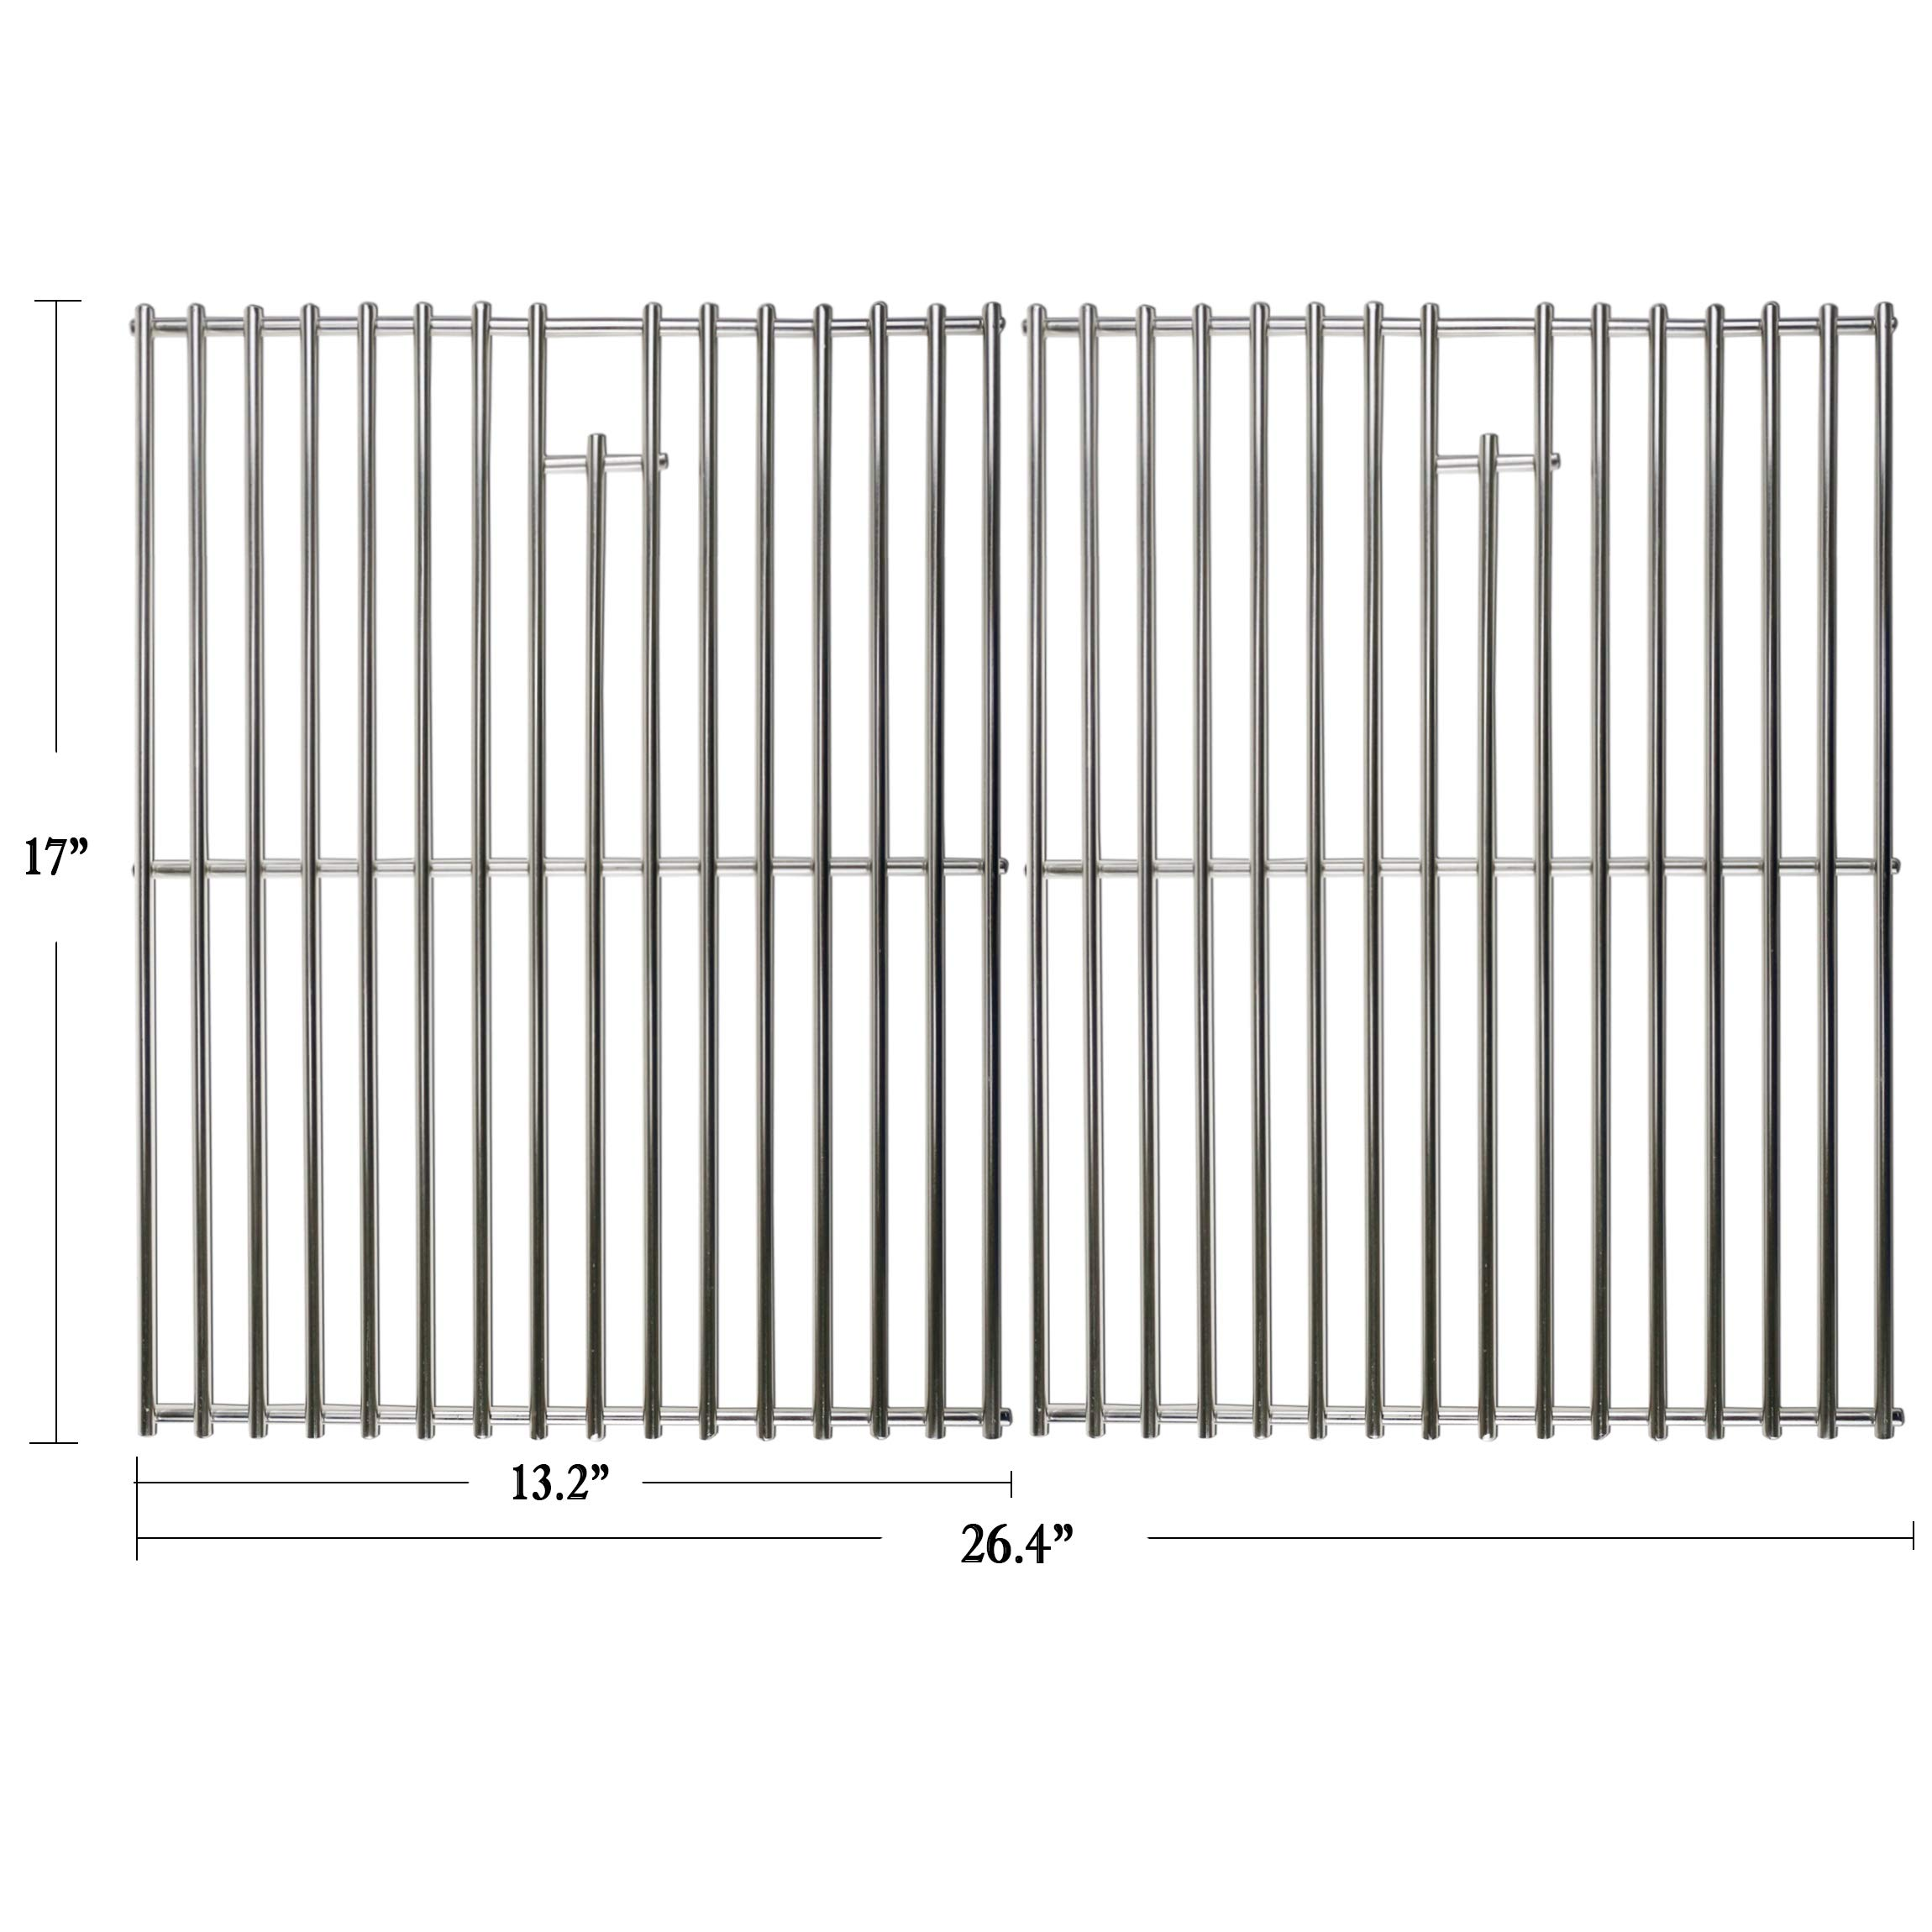 Hisencn 17 inch Grill Cooking Grates Replacement Parts for Home Depot Nexgrill 720-0830H, 720-0830D, Nexgrill 720-0783E, 720-0783C, Kenmore, Uniflame Gas Grils, 17'' Stainless Steel Cooking Grids by Hisencn